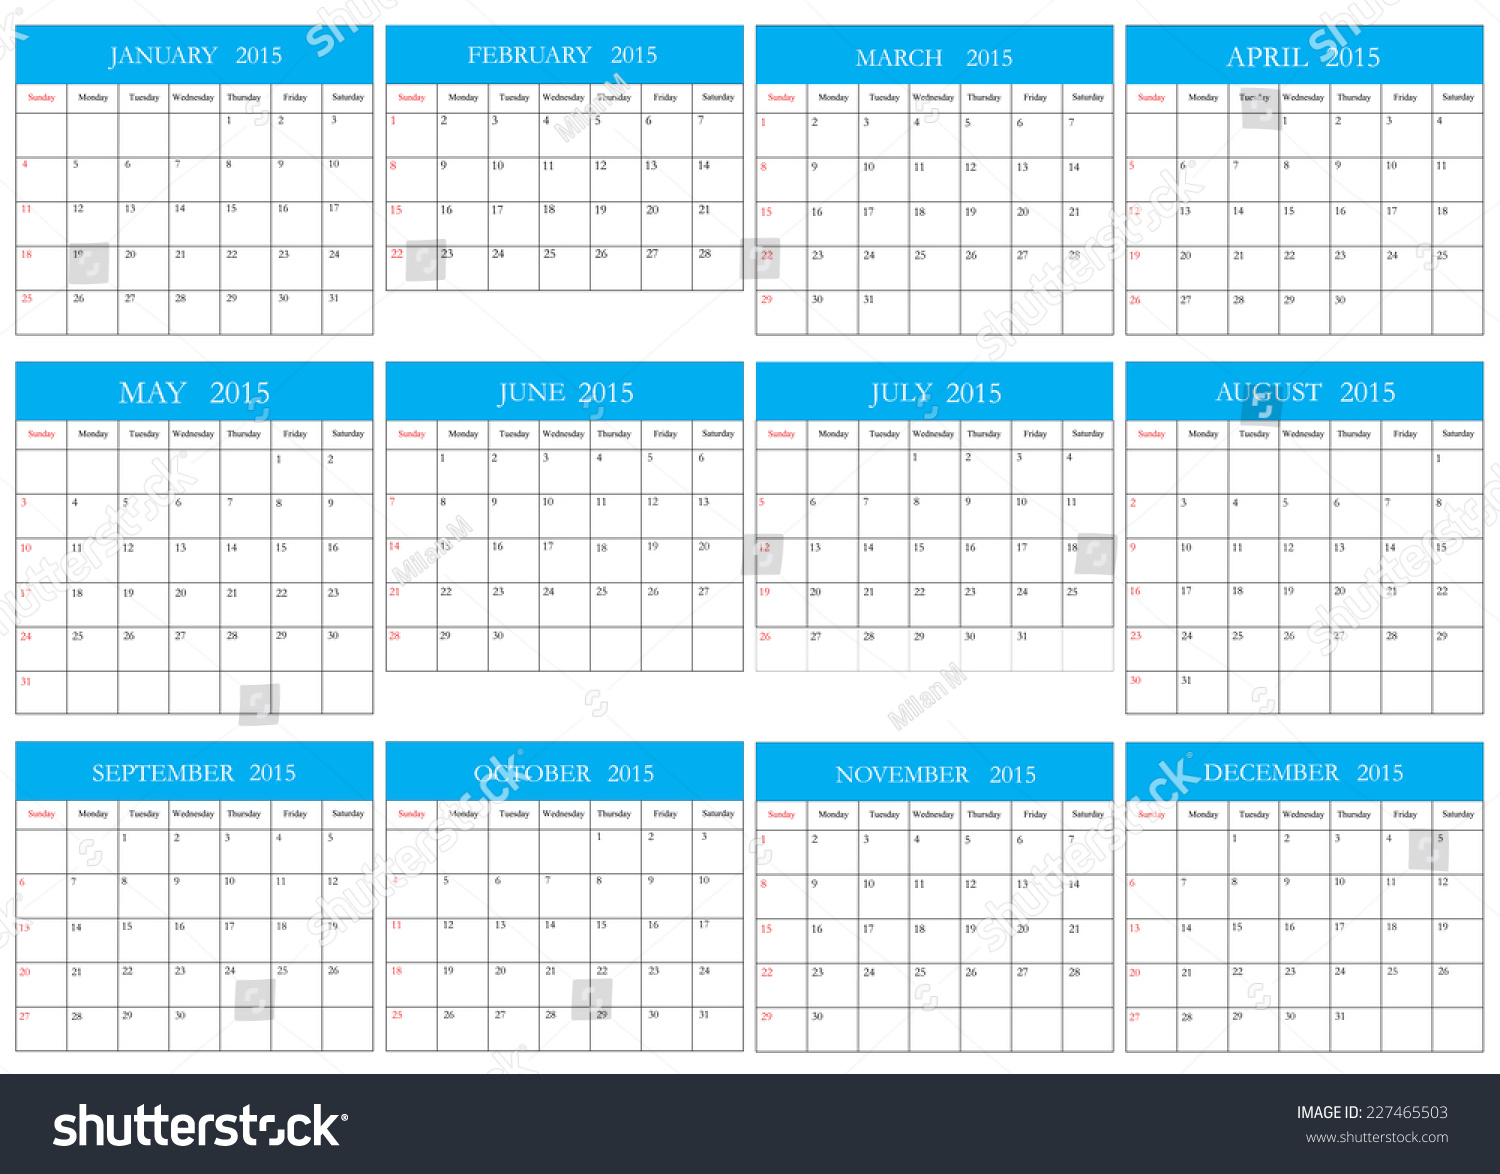 Calendar Illustration Vector : Simple calendar vector illustrationplanning